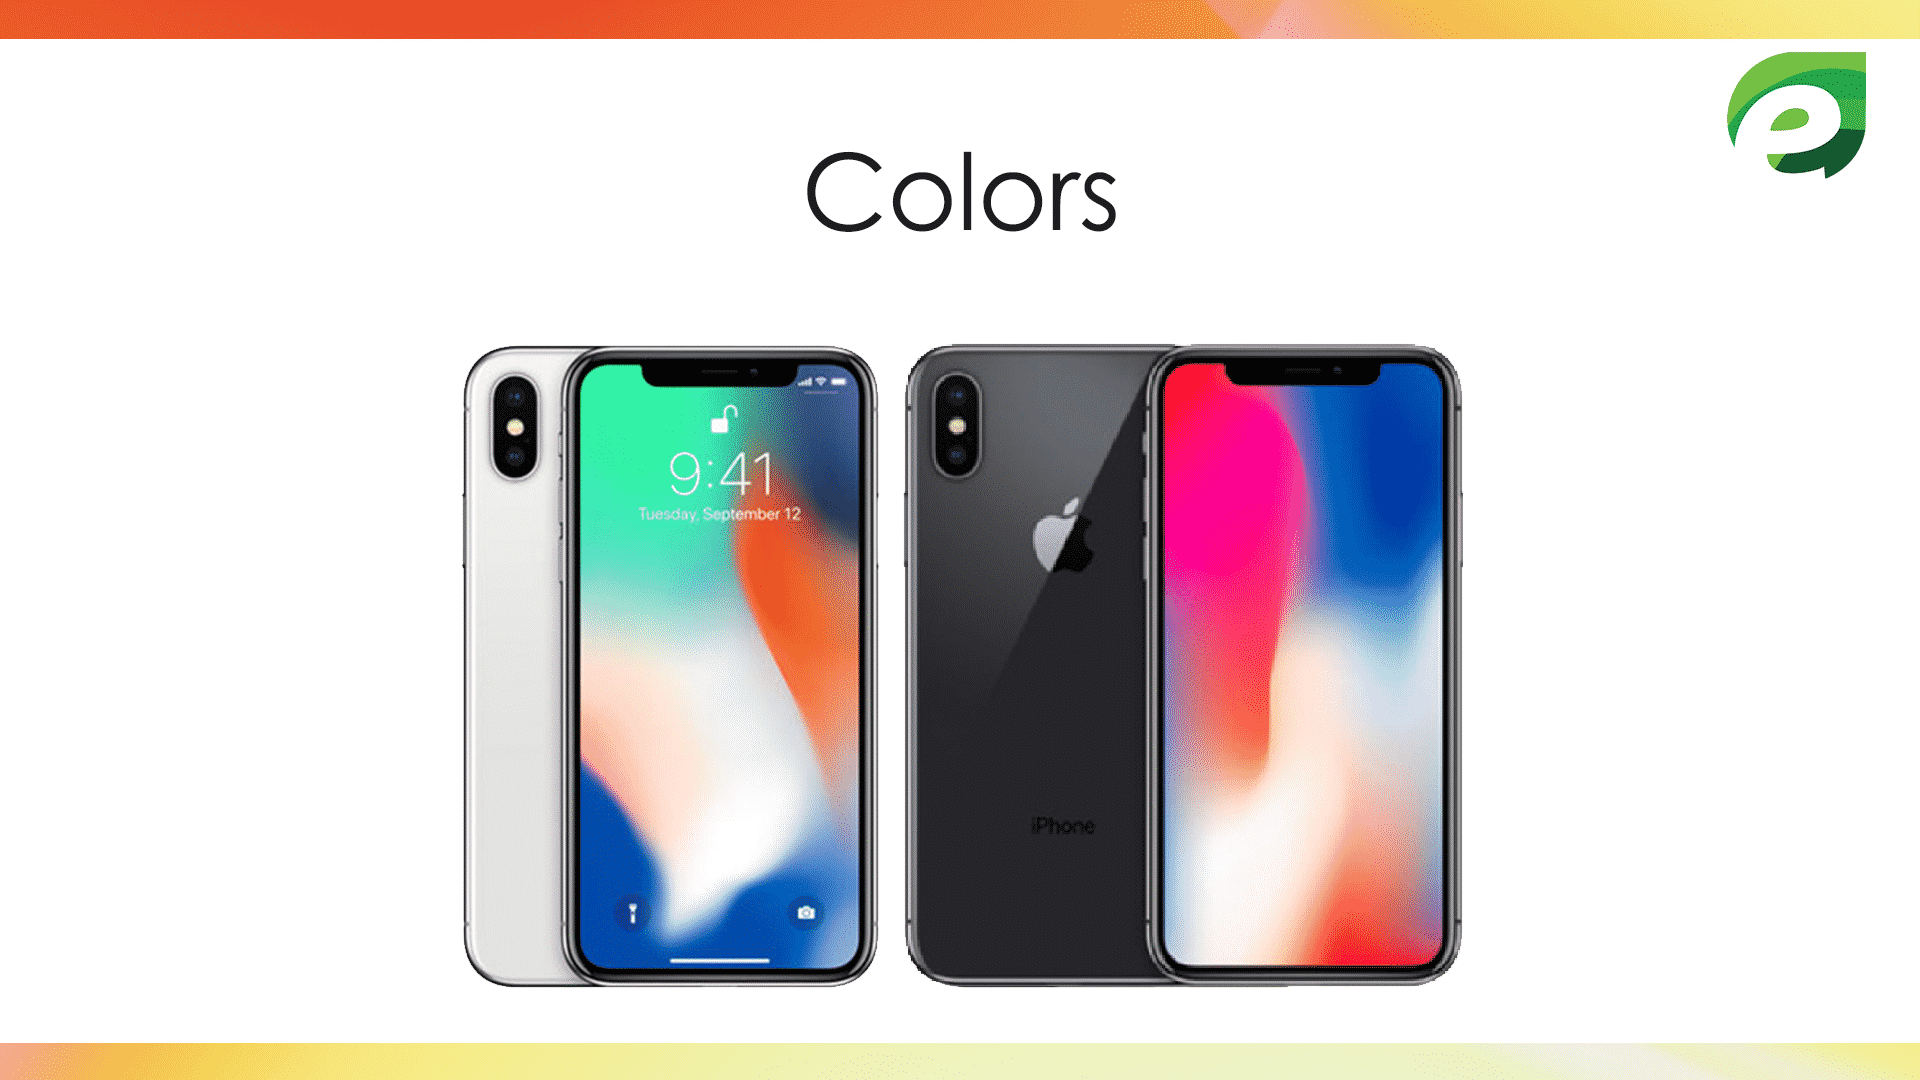 iphone x- colors